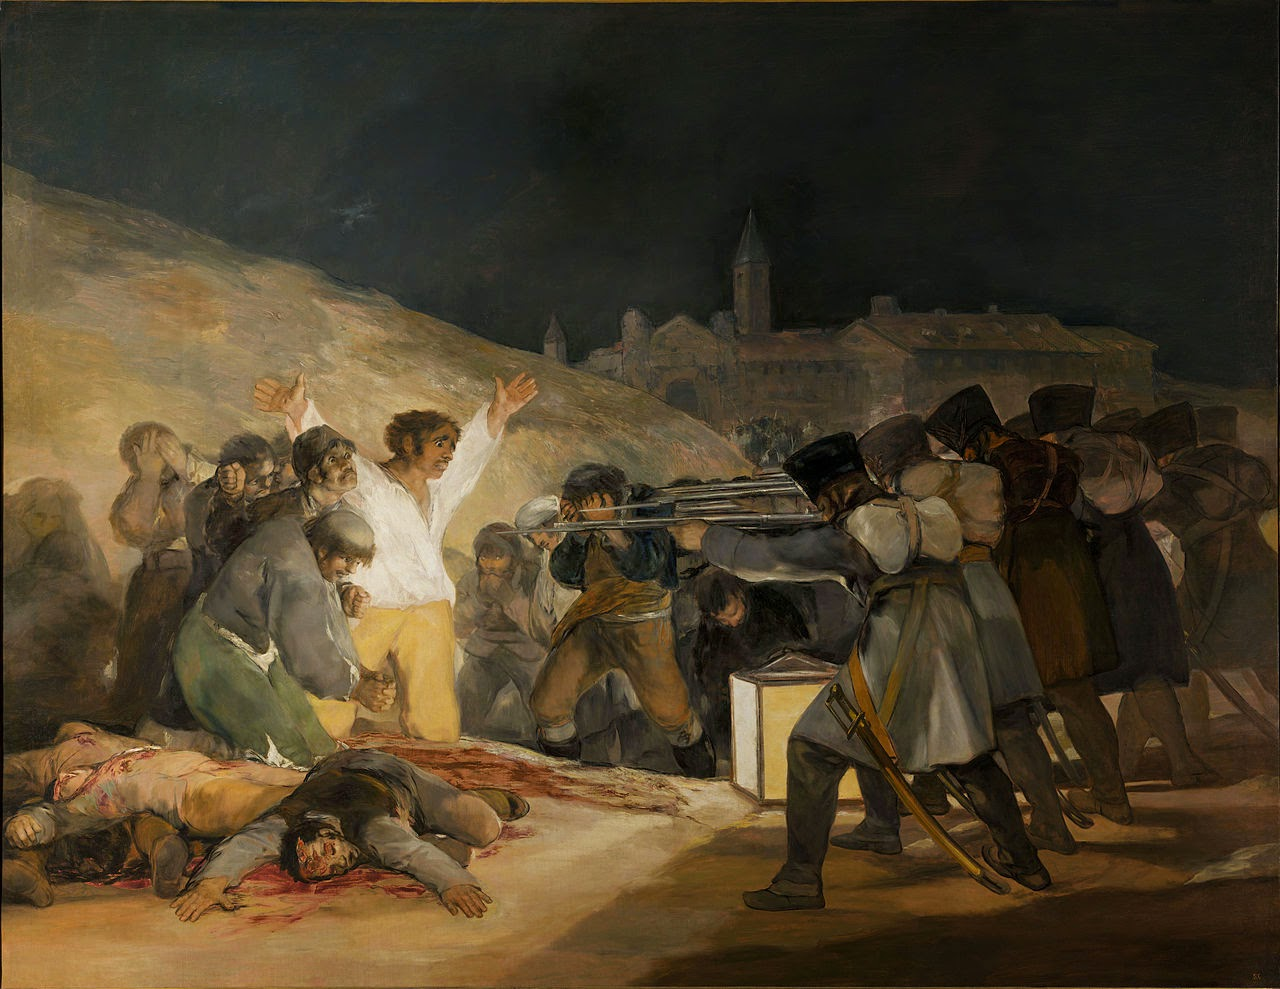 analysis painting guernica picasso and third may goya The third of may 1808 is a painting by francisco goya famous artwork: the third of may the massacre in korea and guernica by pablo picasso and execution.